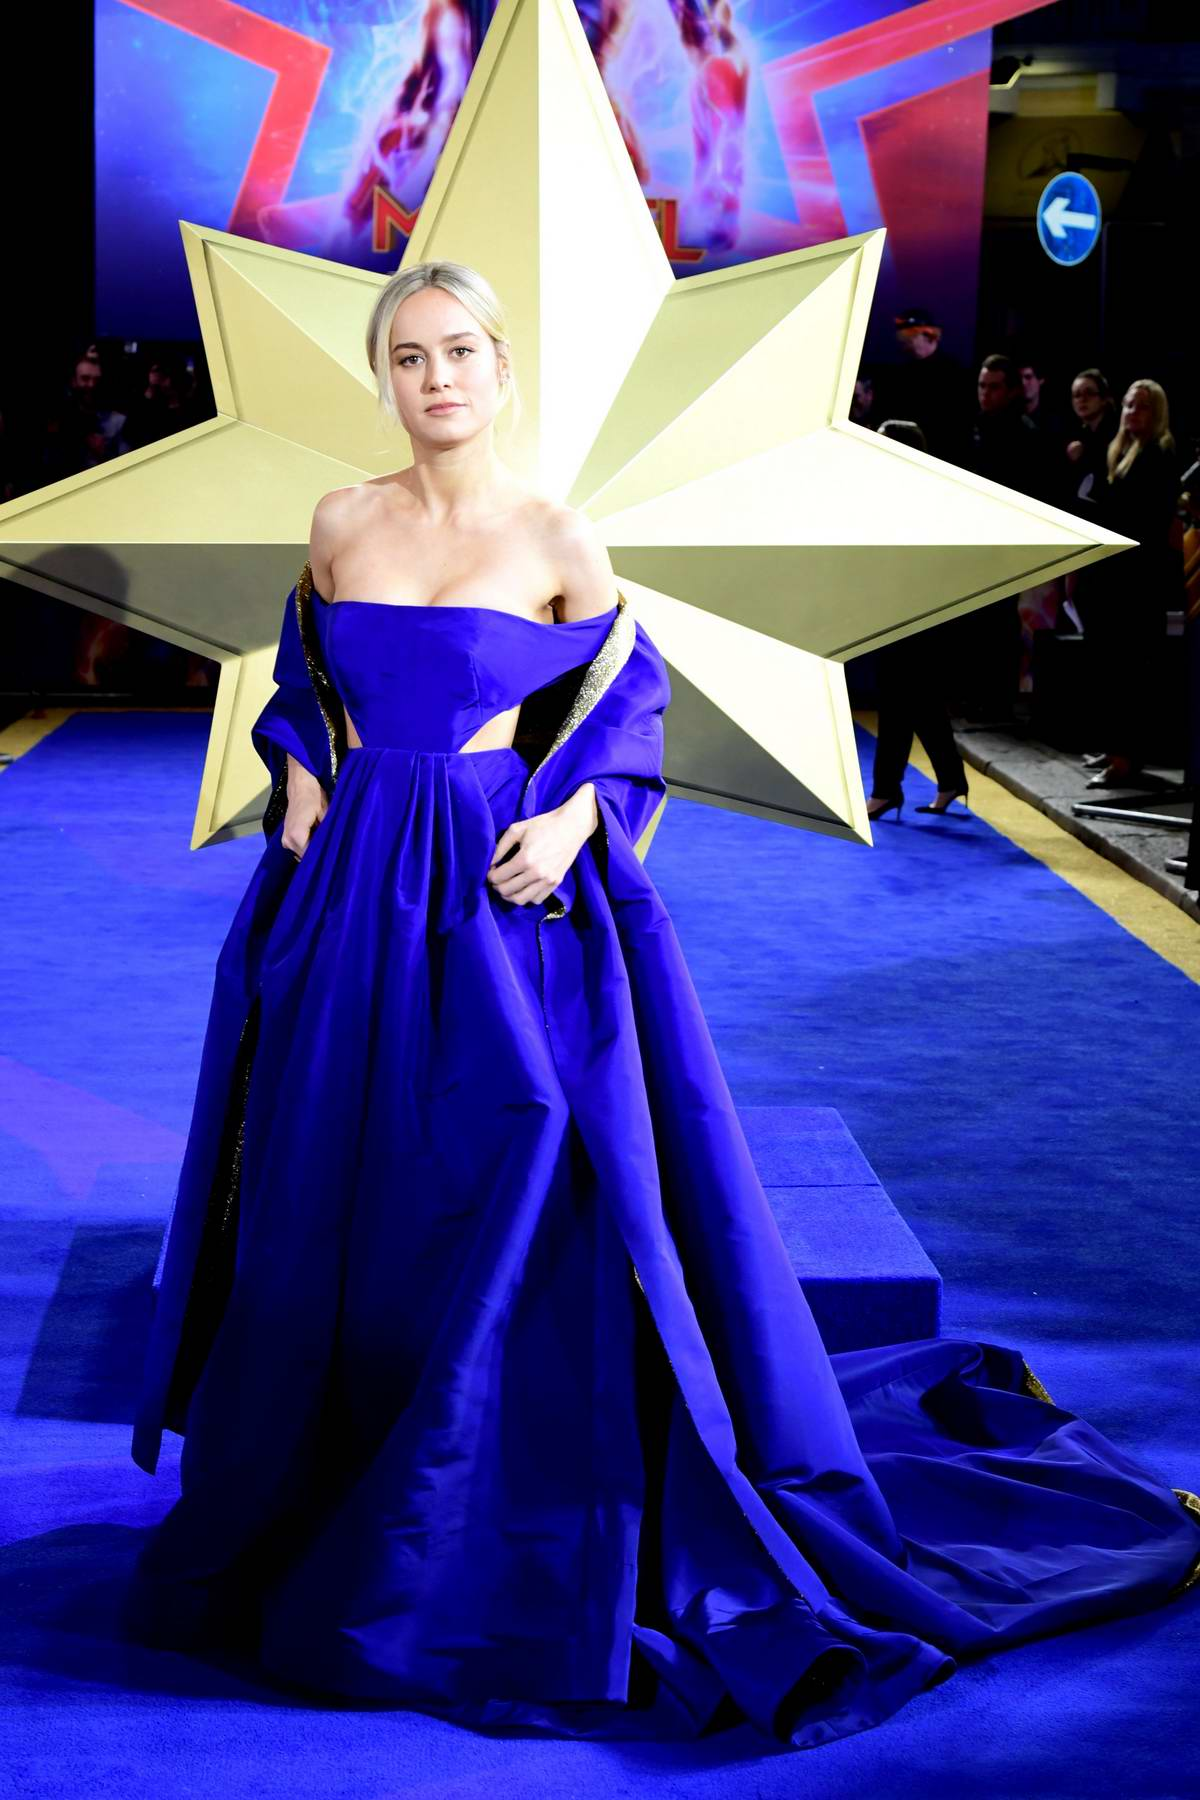 Brie Larson attends The European premiere of 'Captain Marvel' at Curzon Mayfair in London, UK